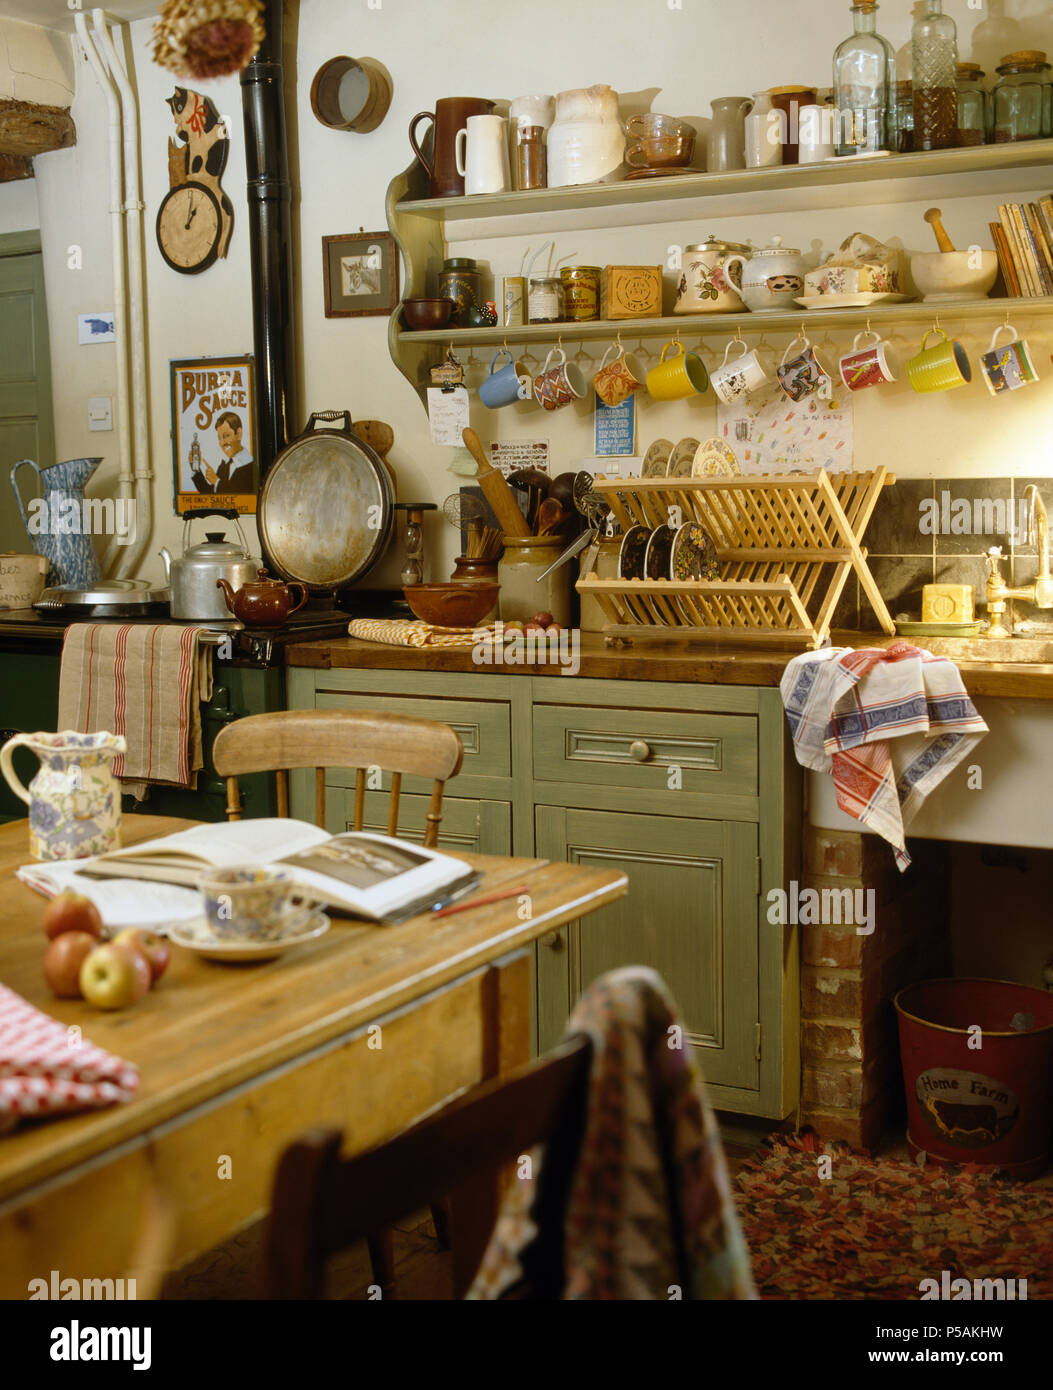 Old Fashioned Kitchen High Resolution Stock Photography And Images Alamy